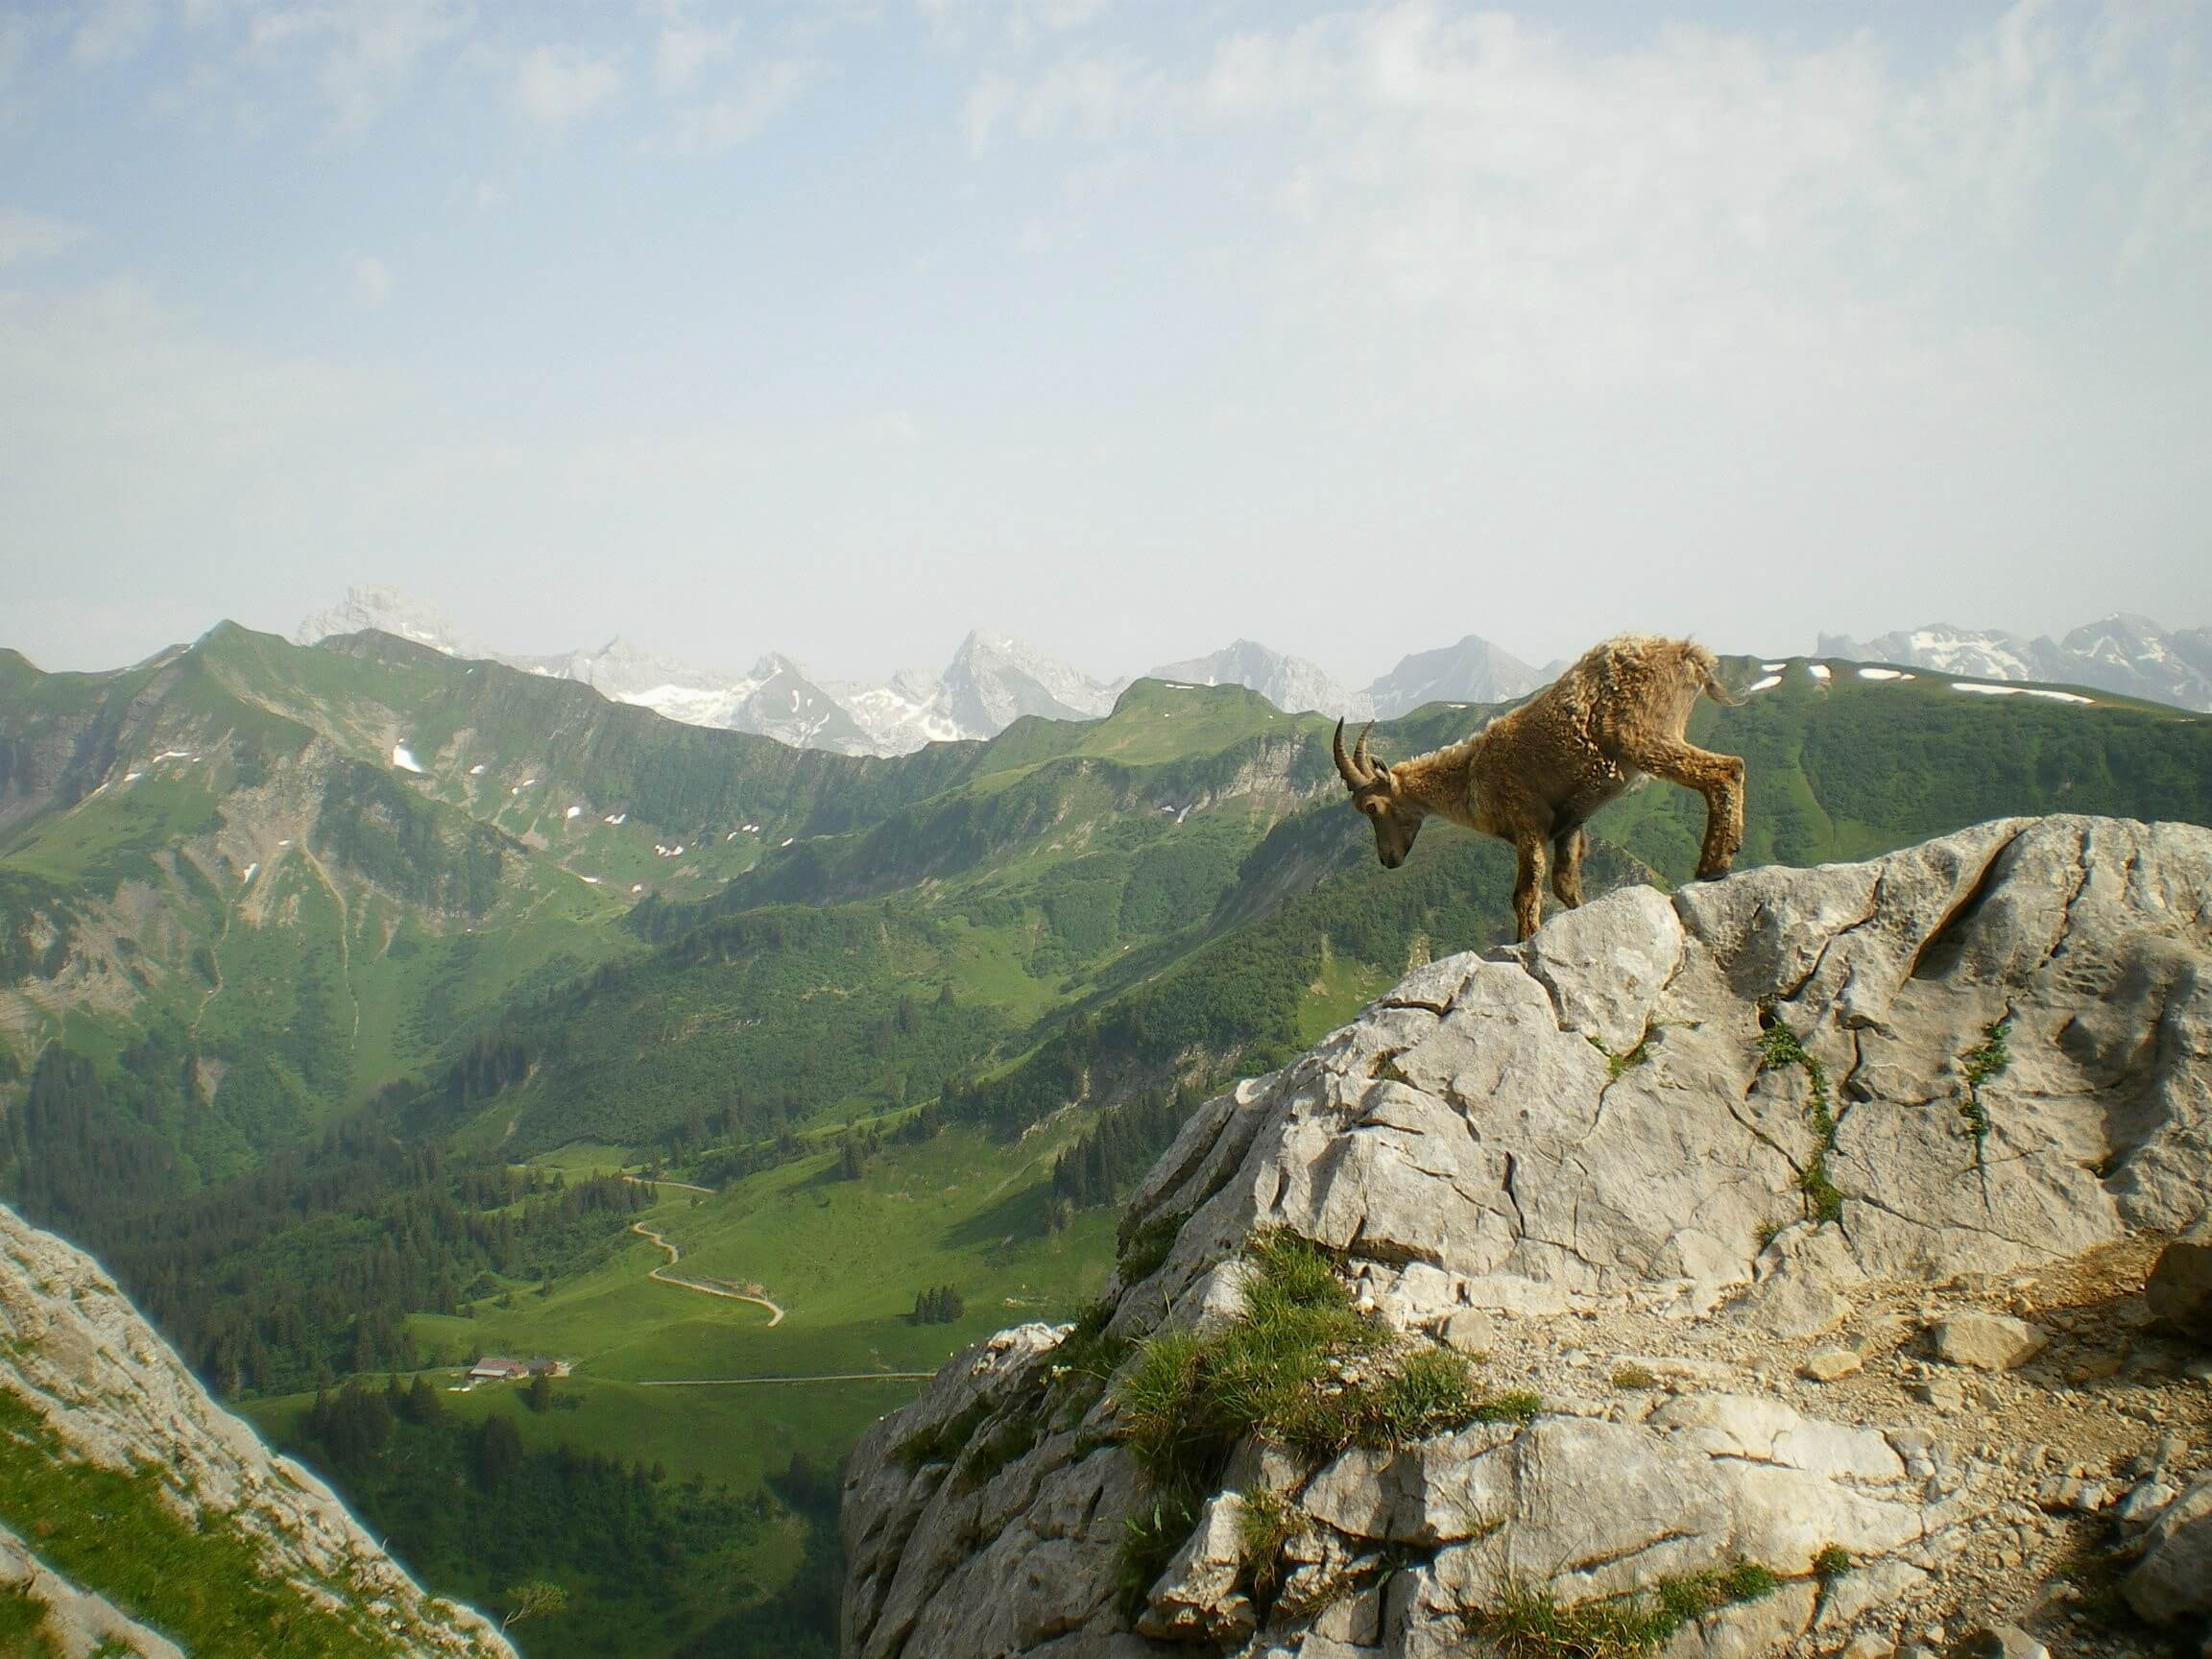 Ibex walking a rocky cliff in the mountains